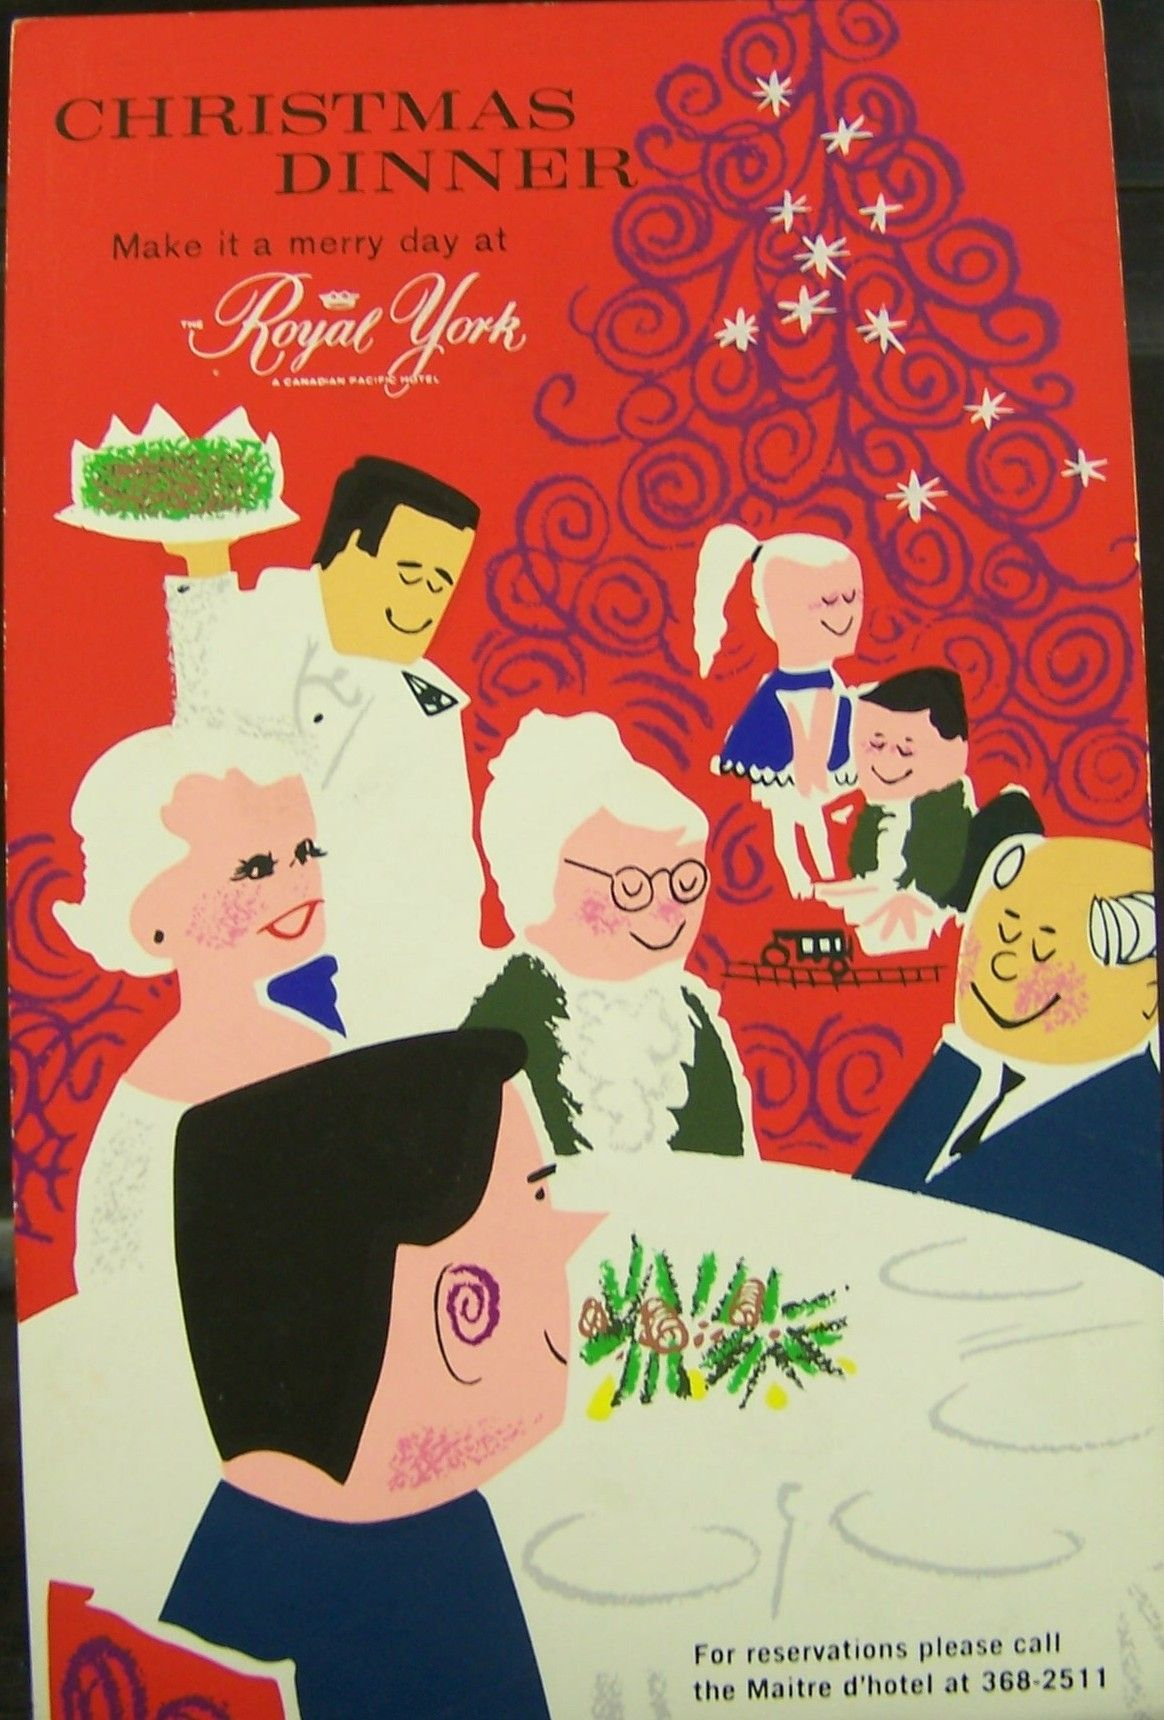 Vintage Christmas Dinner Marketing Poster For The Royal York Hotel